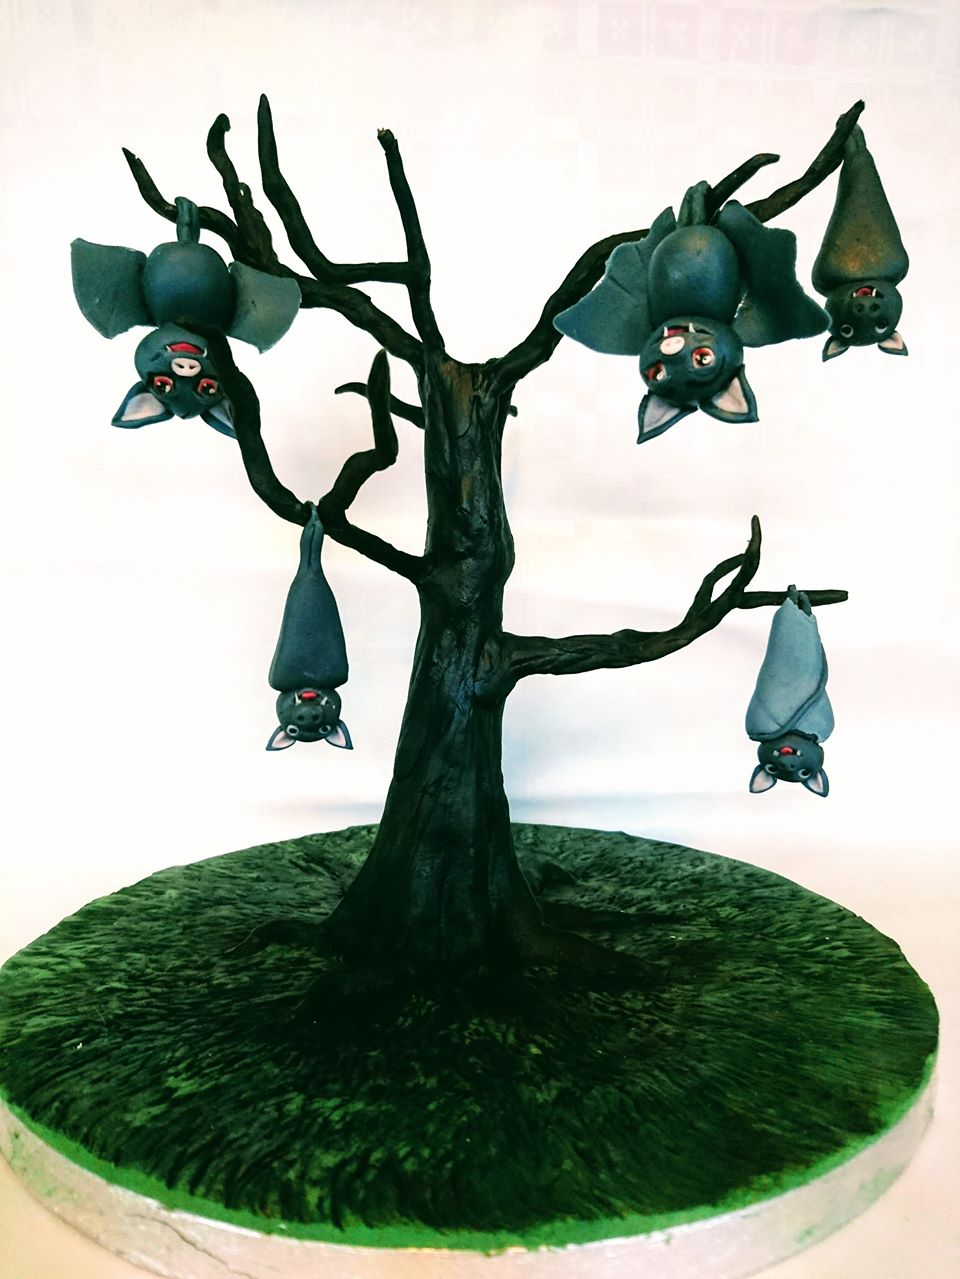 Bats by Gladys McDermott